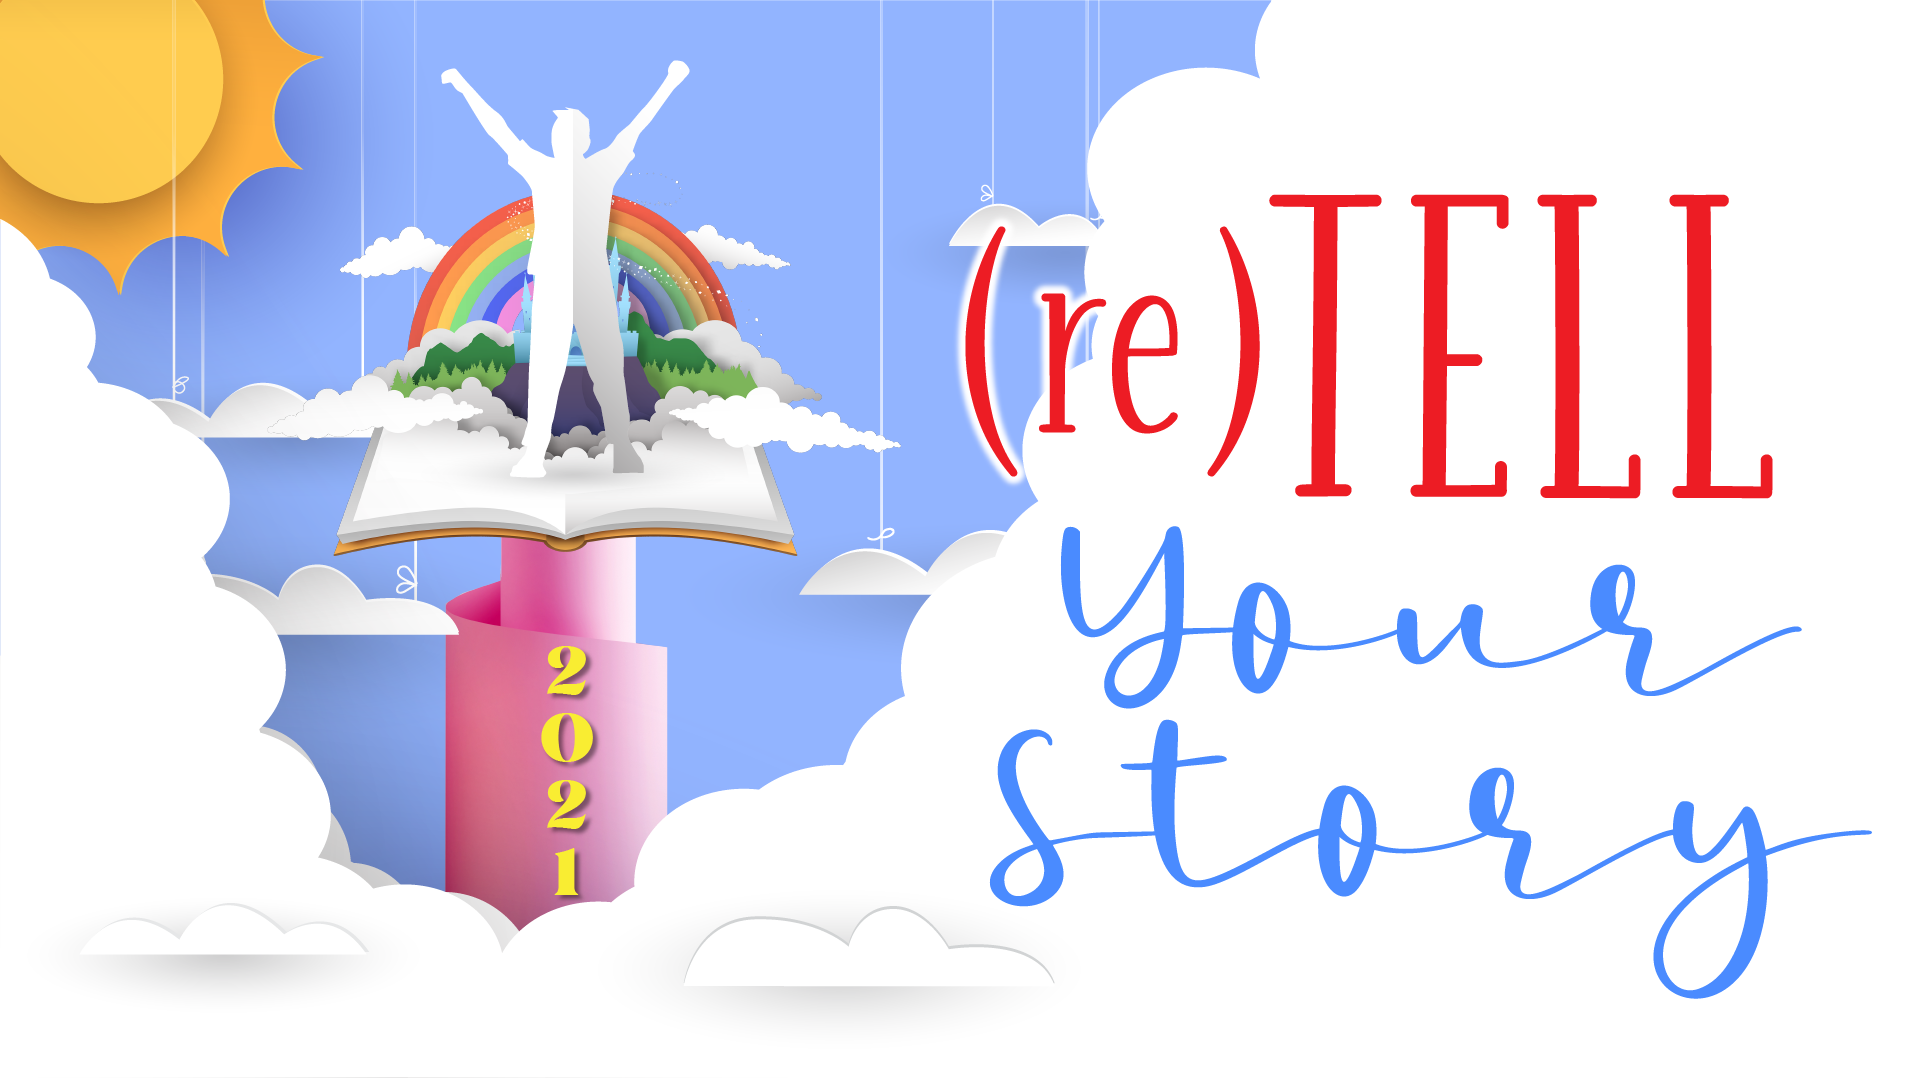 retell your story january 2021